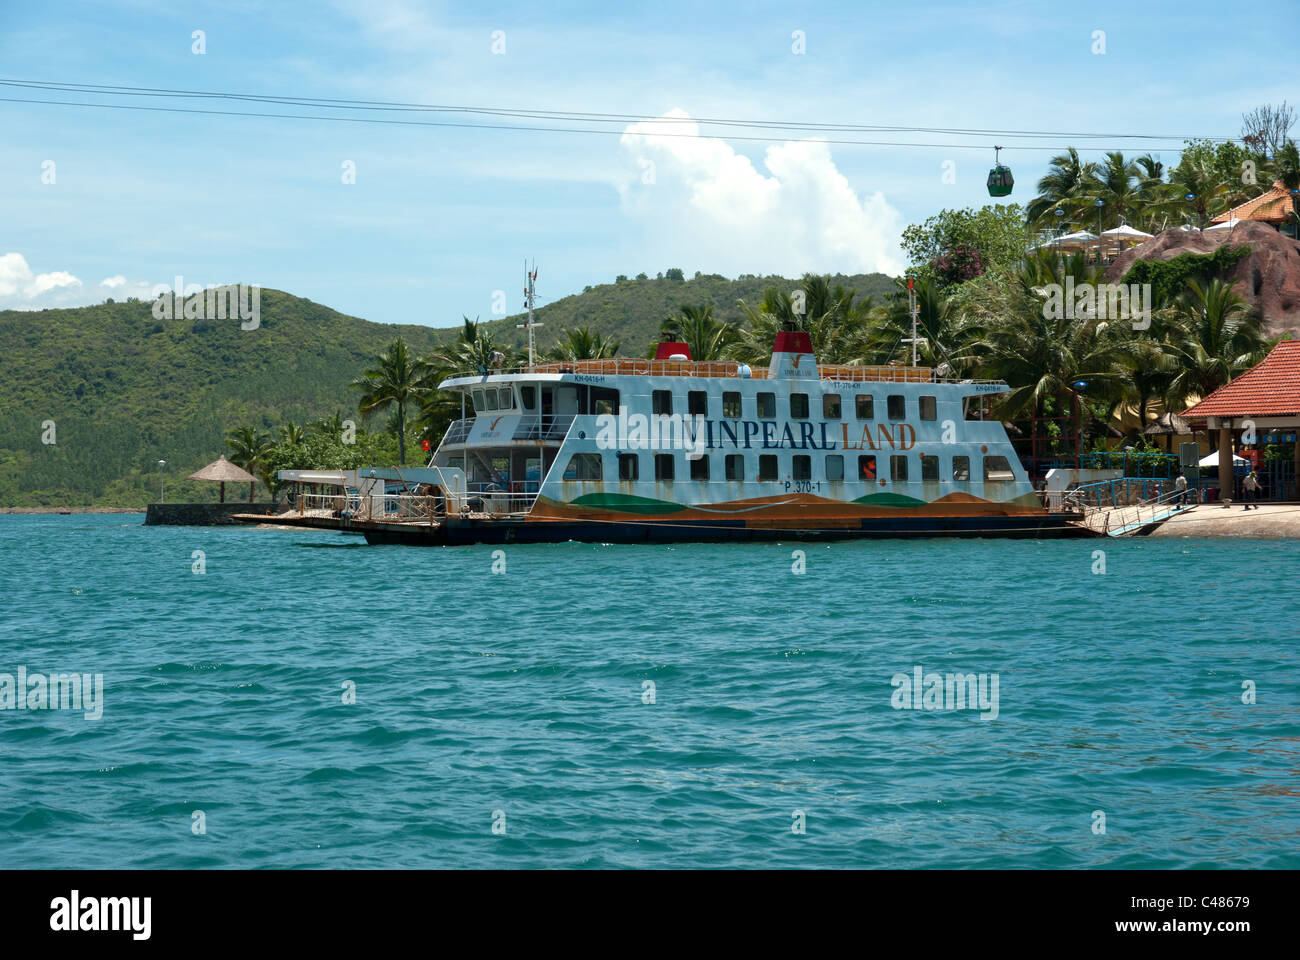 Ferry transporting visitors from Nha Trang to Vinpearl, Vietnam - Stock Image